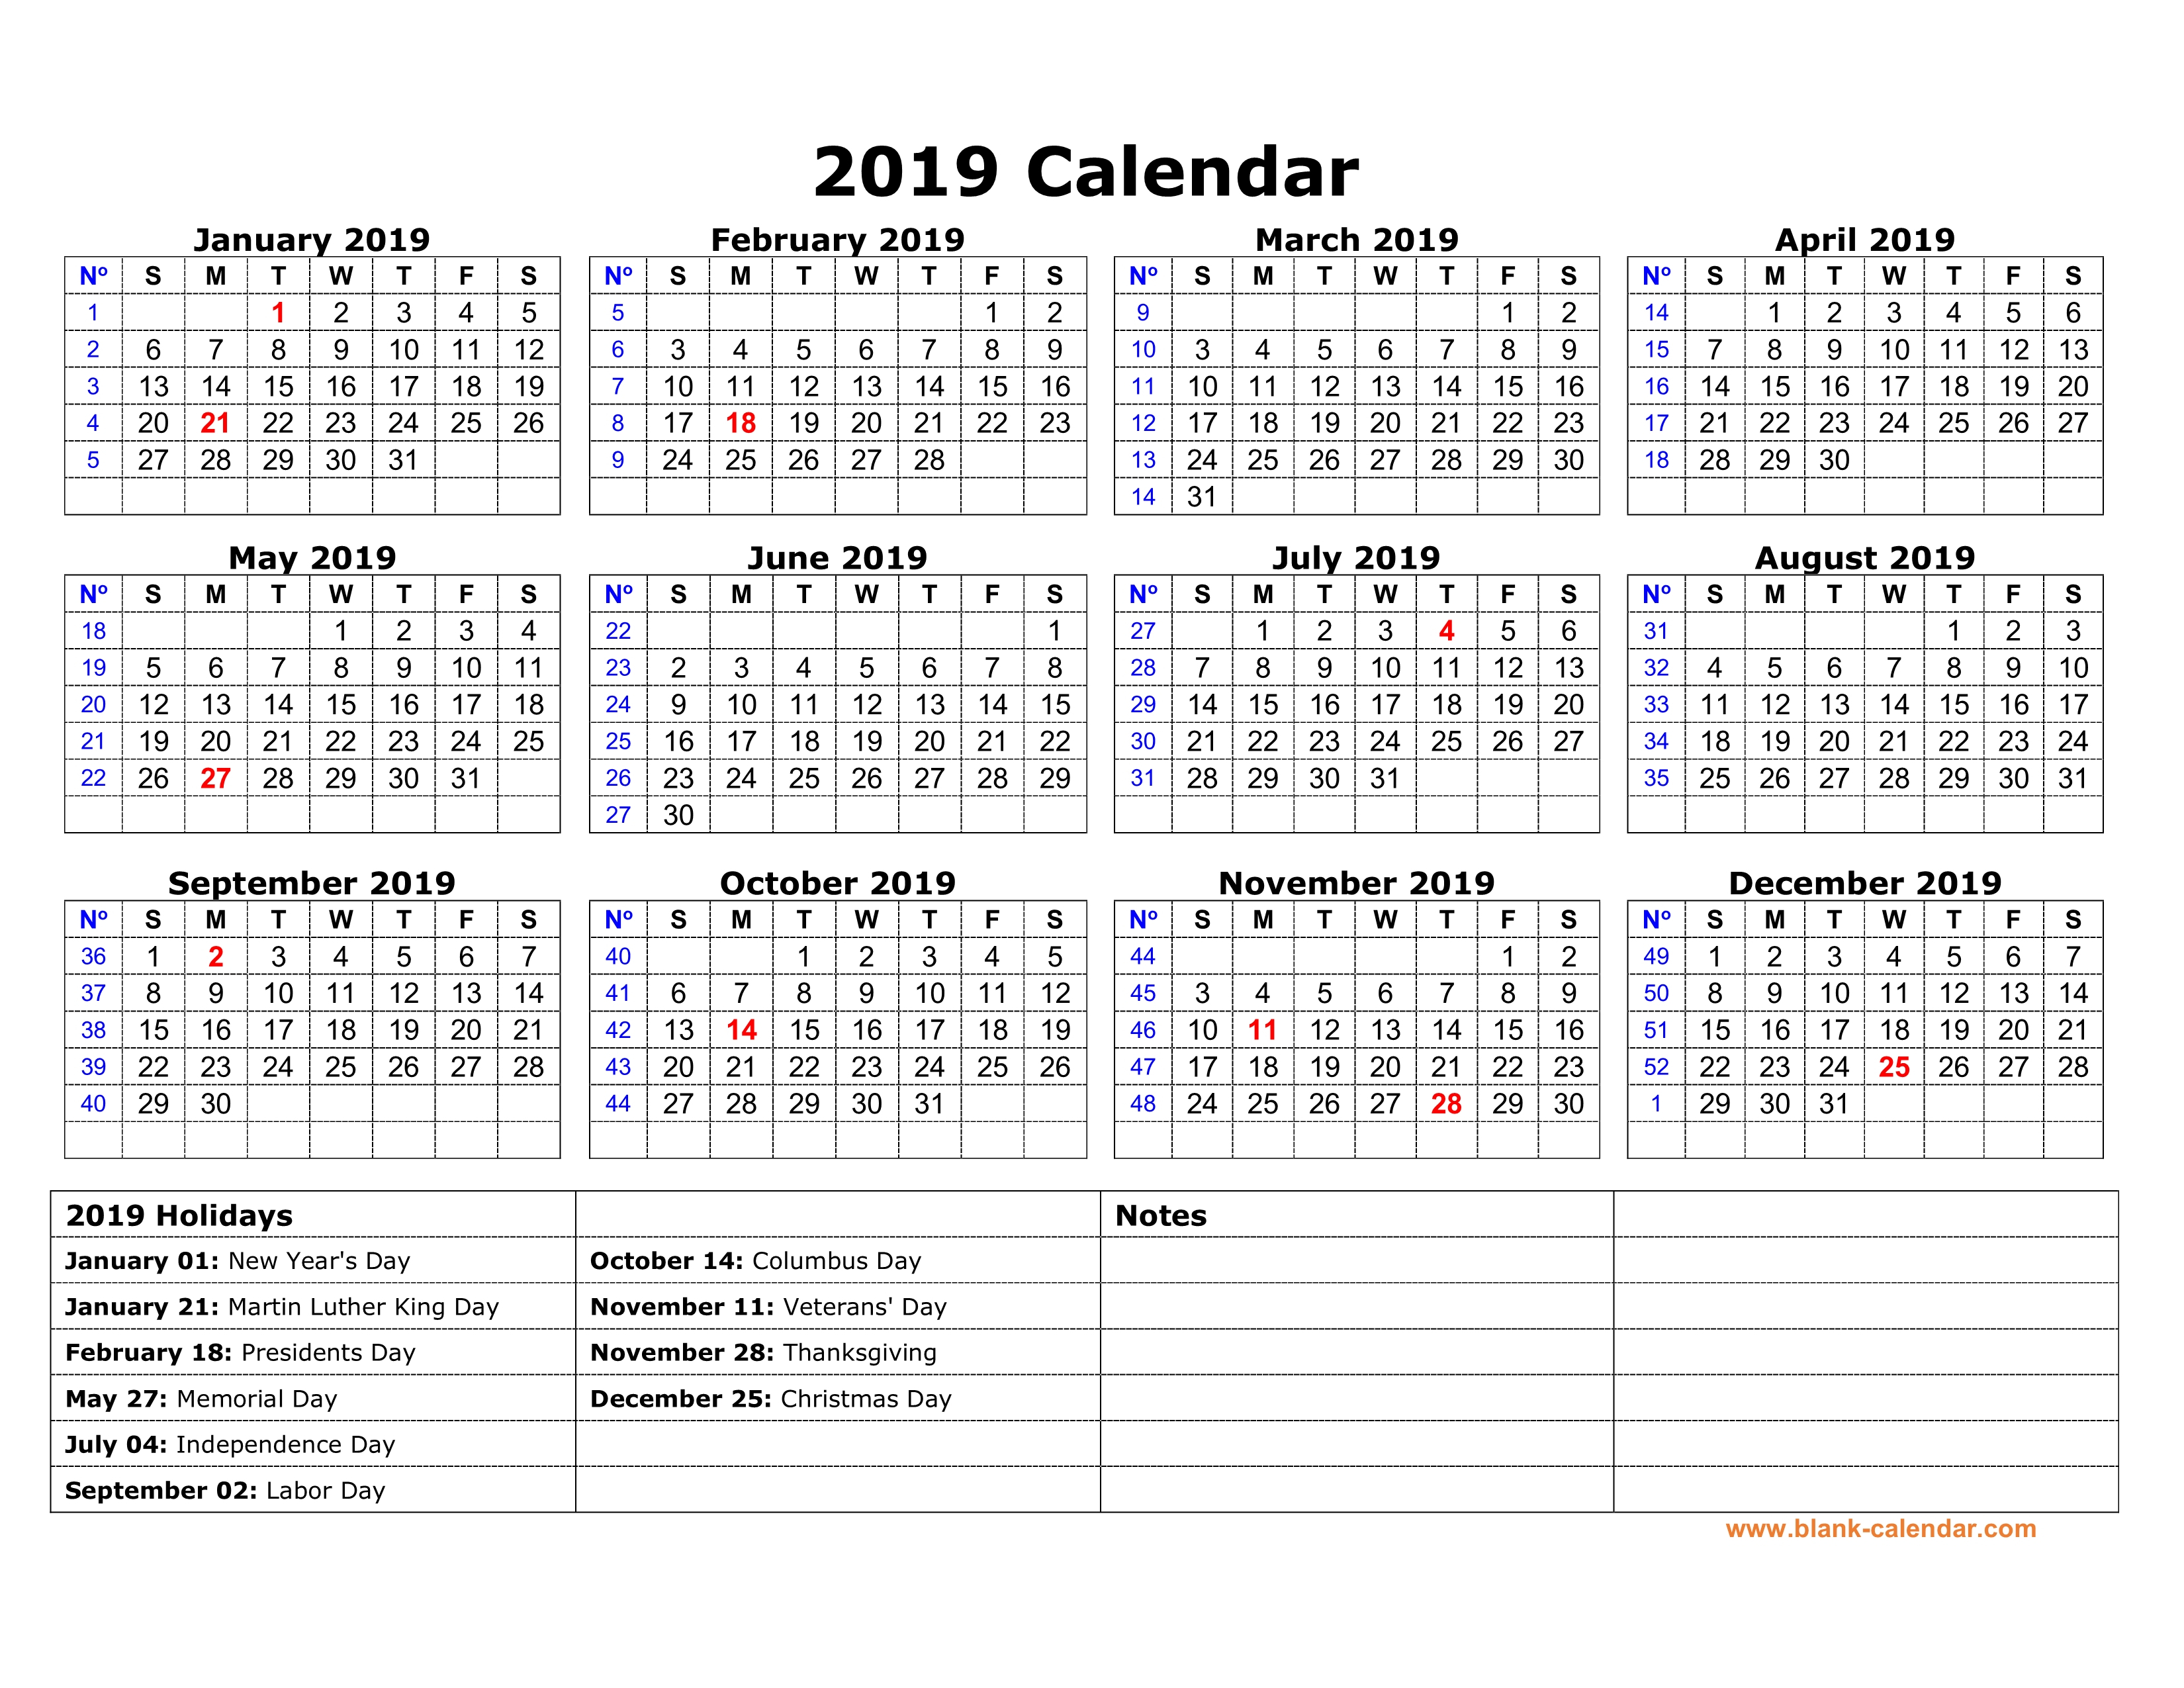 Holidays Calendar 2019 - Erha.yasamayolver inside How To Create A Jweish Calender In One Page For 2019-2020